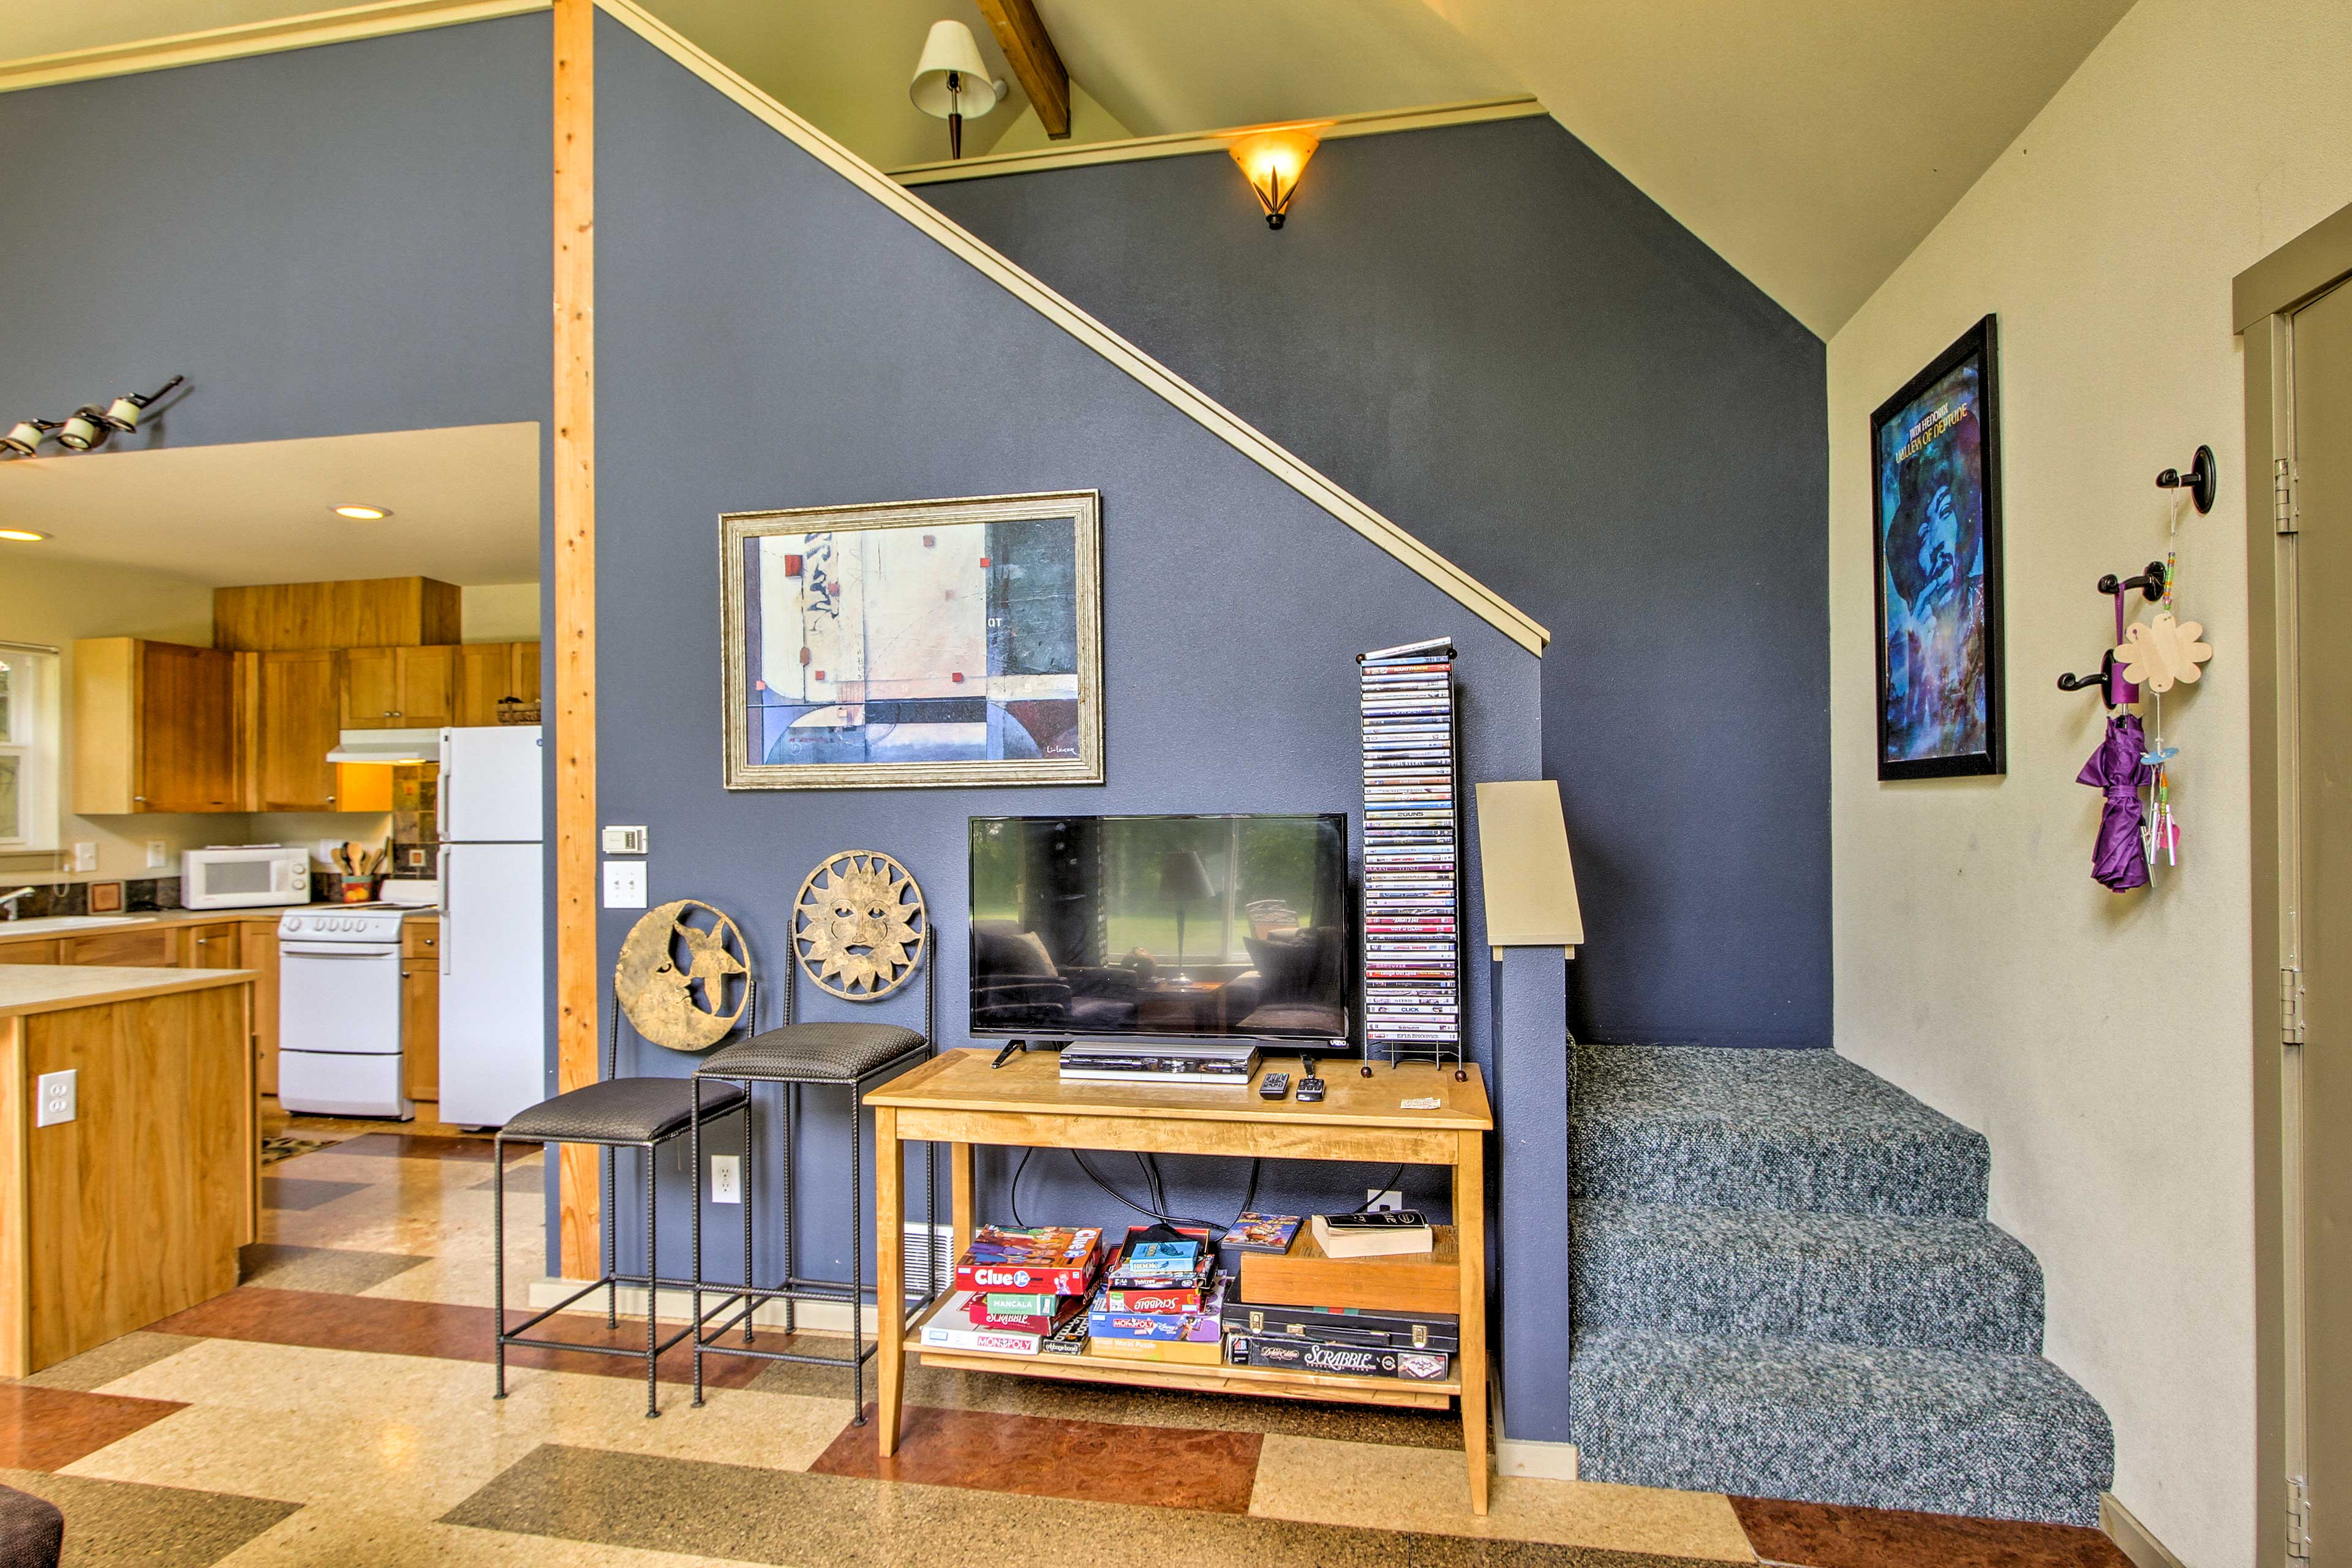 Gather in the living room to watch a movie or play games!